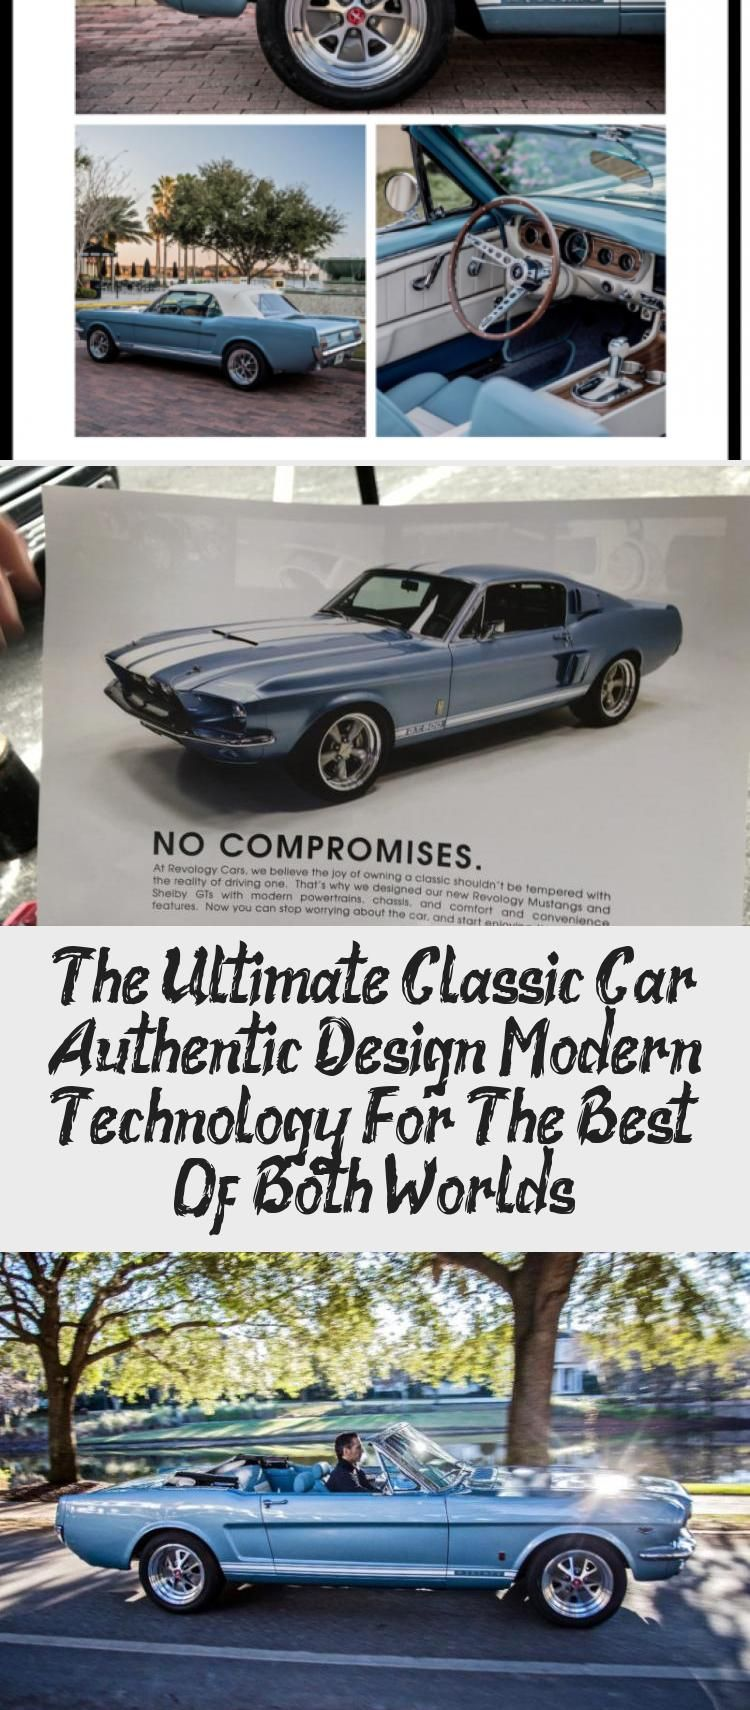 The Ultimate Classic Car: Authentic Design, Modern Technology For The Best Of Both Worlds – Technology